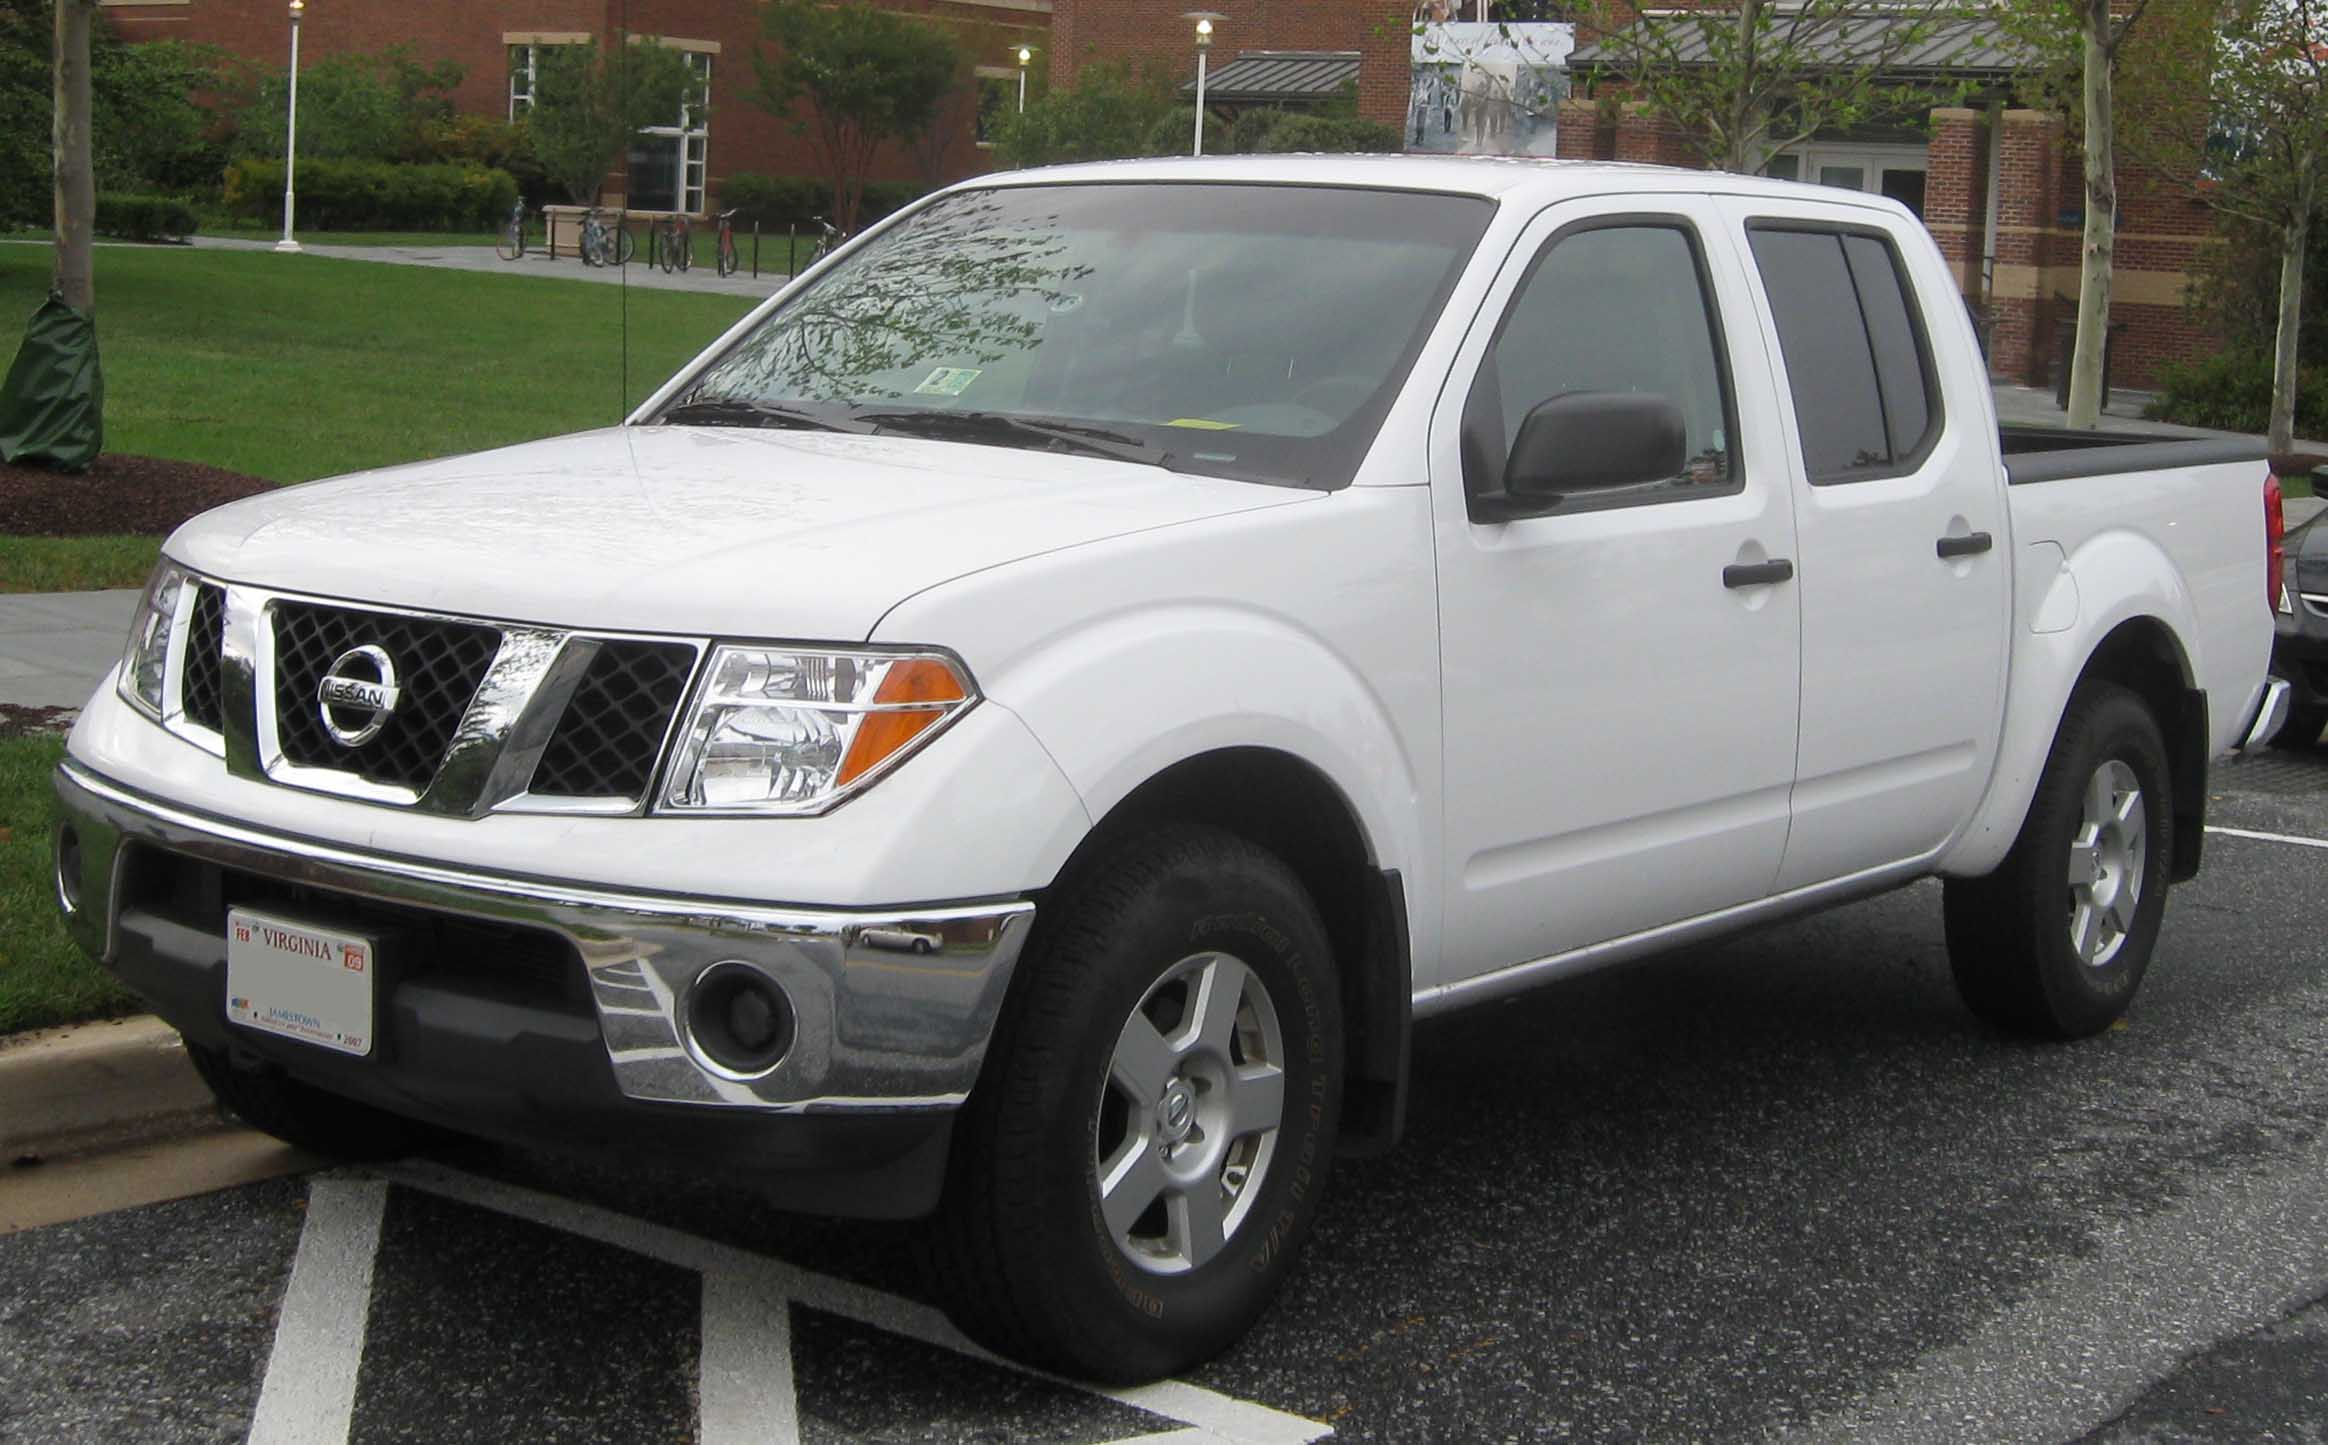 2009 white nissan frontier images hd cars wallpaper 2005 nissan frontier information and photos zombiedrive 2005 nissan frontier 12 nissan frontier 12 vanachro images vanachro Gallery